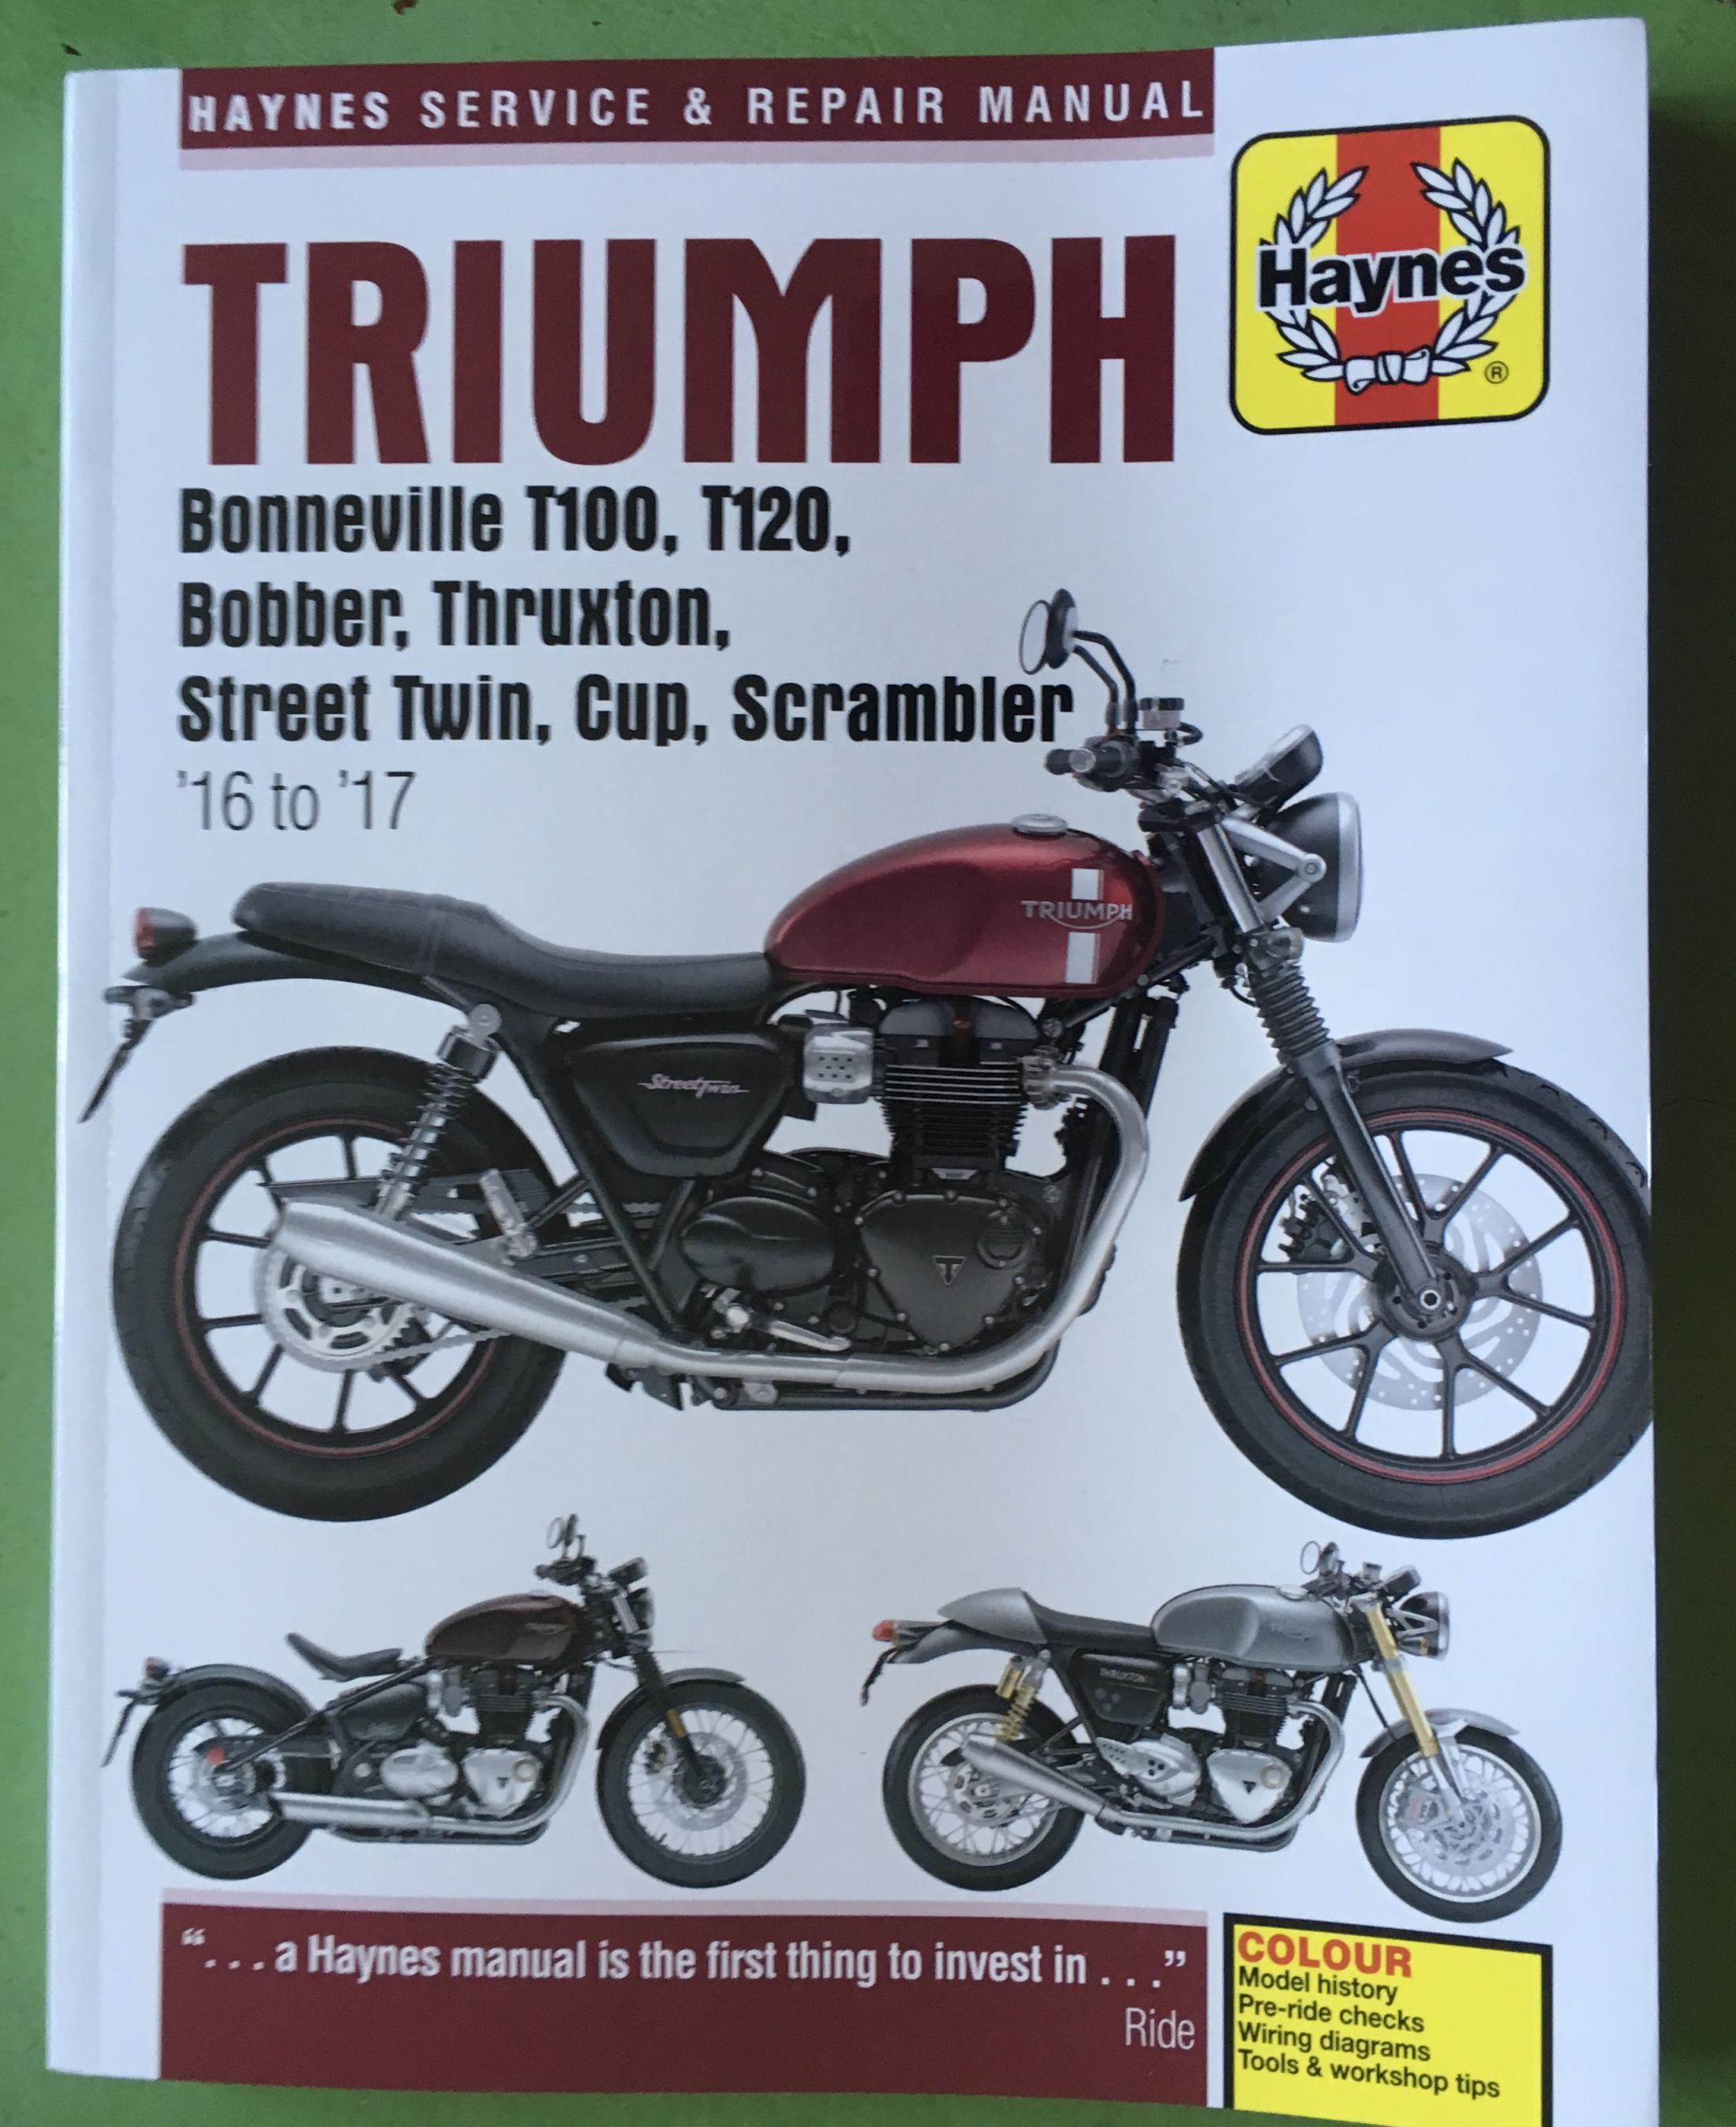 What Did You Do With Your Water Cooled Twin Today Page 2014 Thruxton Wiring Diagram Click Image For Larger Version Name 60b9284c 0879 4d00 B44b 45a40c8bd3aa